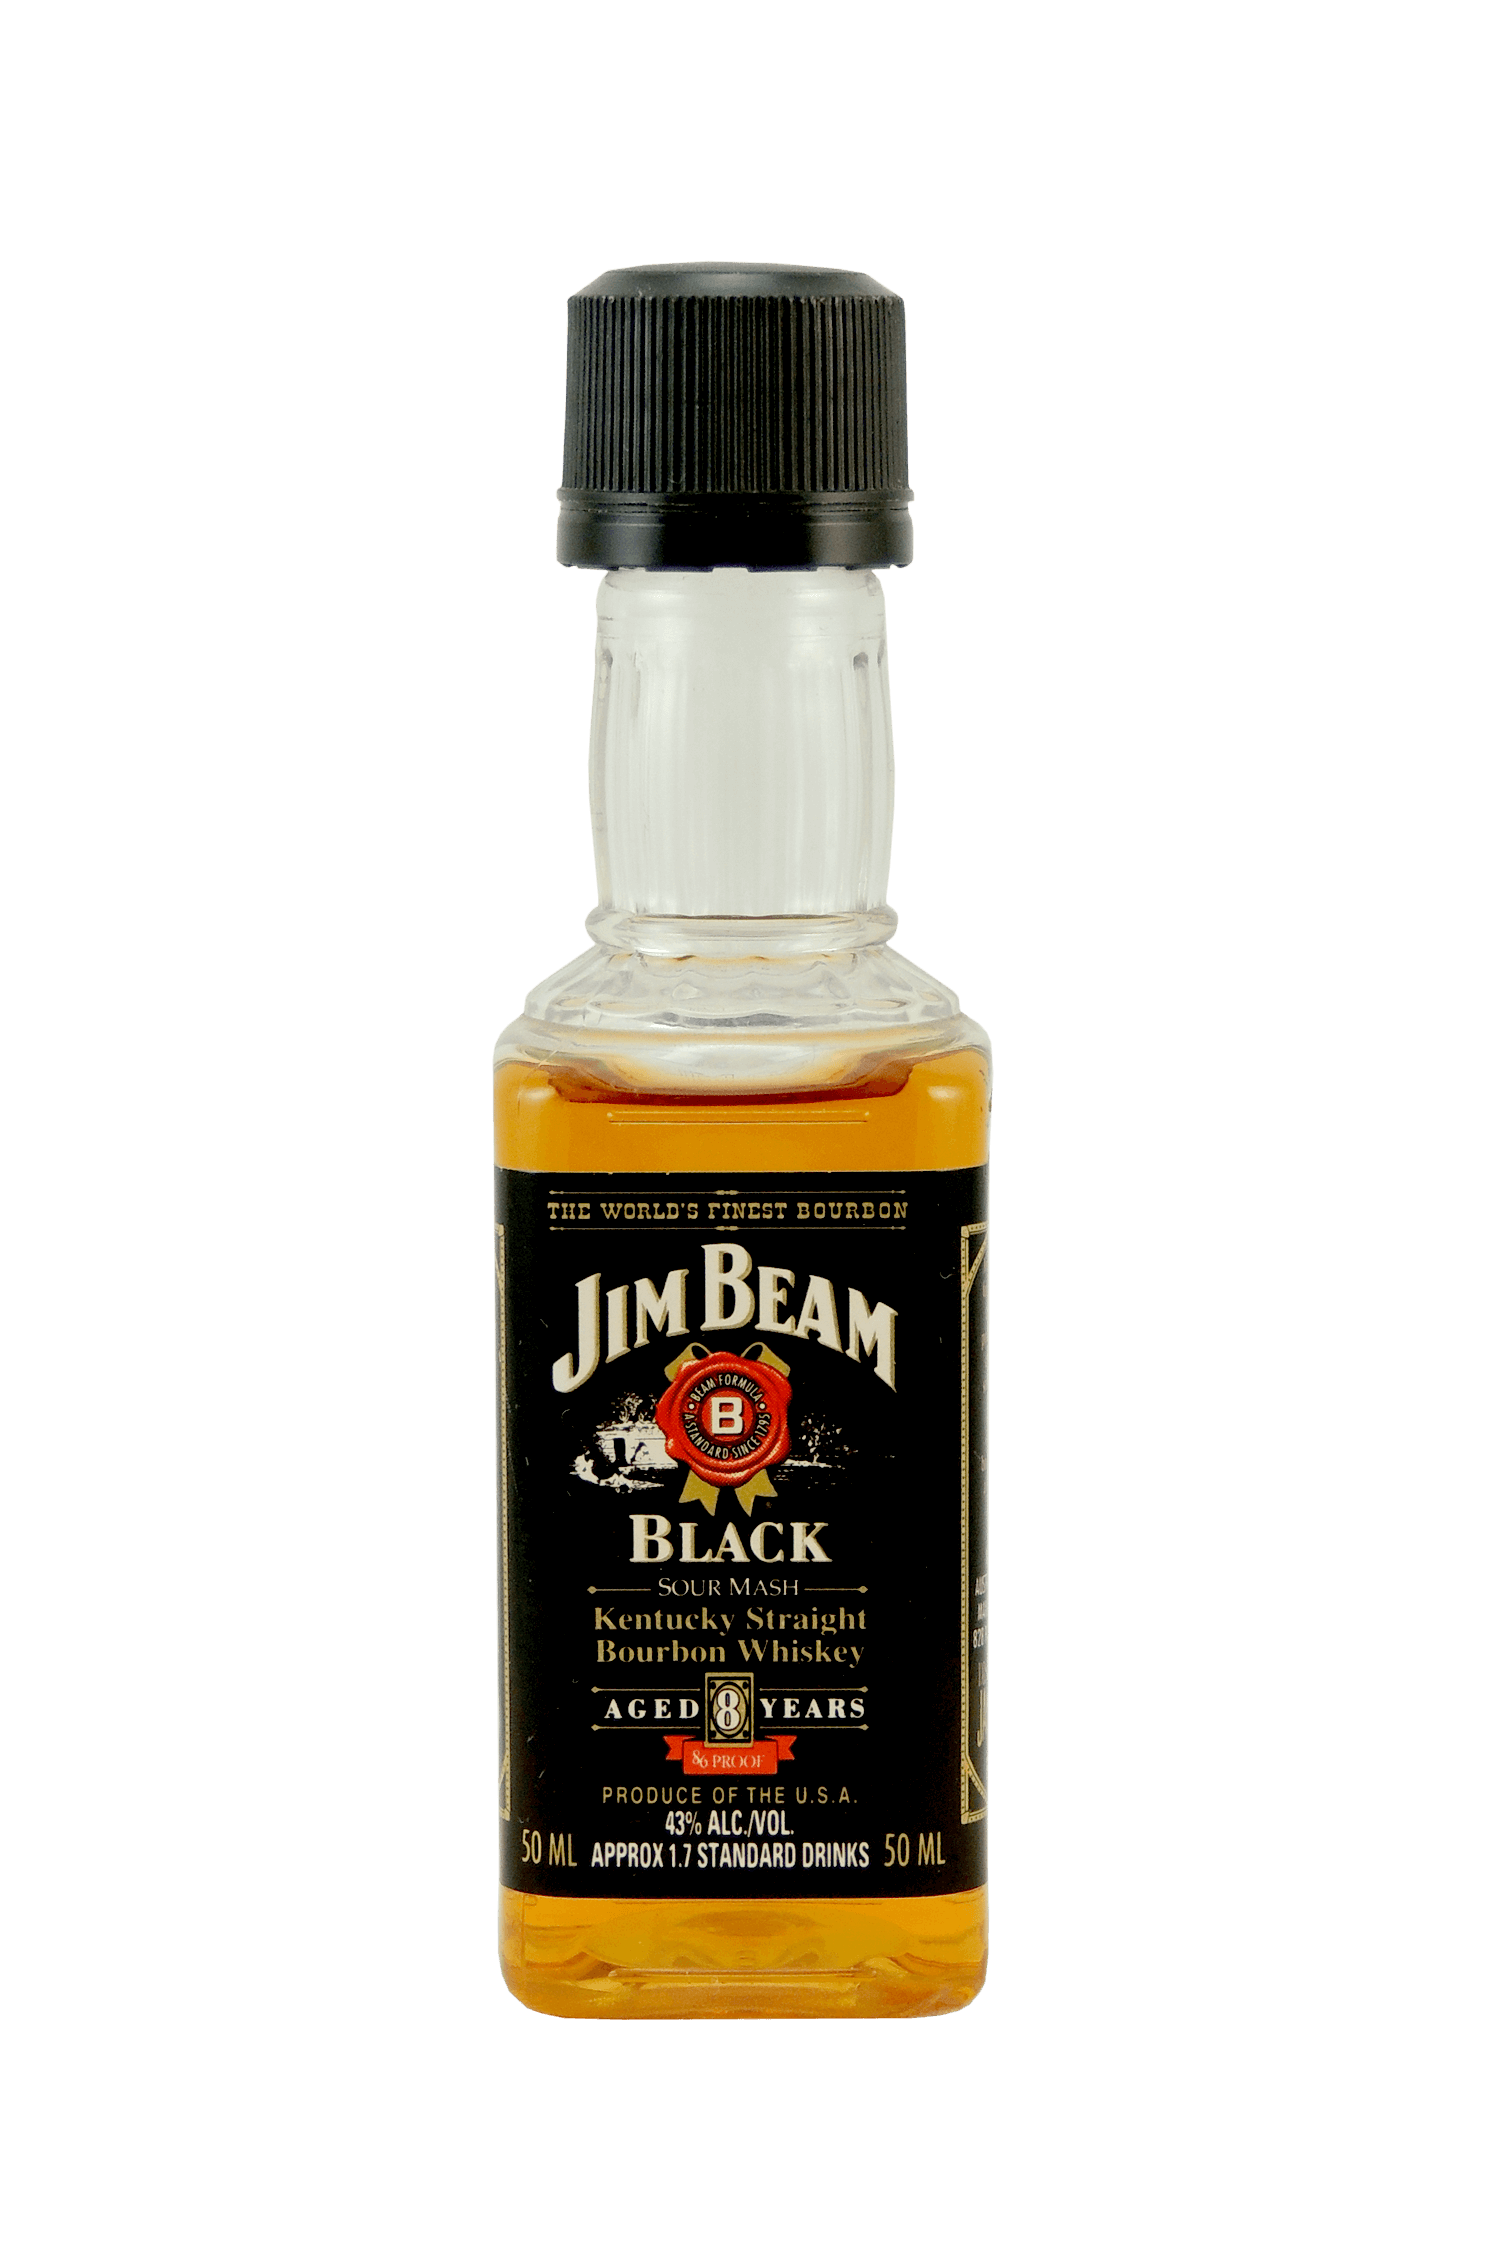 Jim Beam Black 8 Years